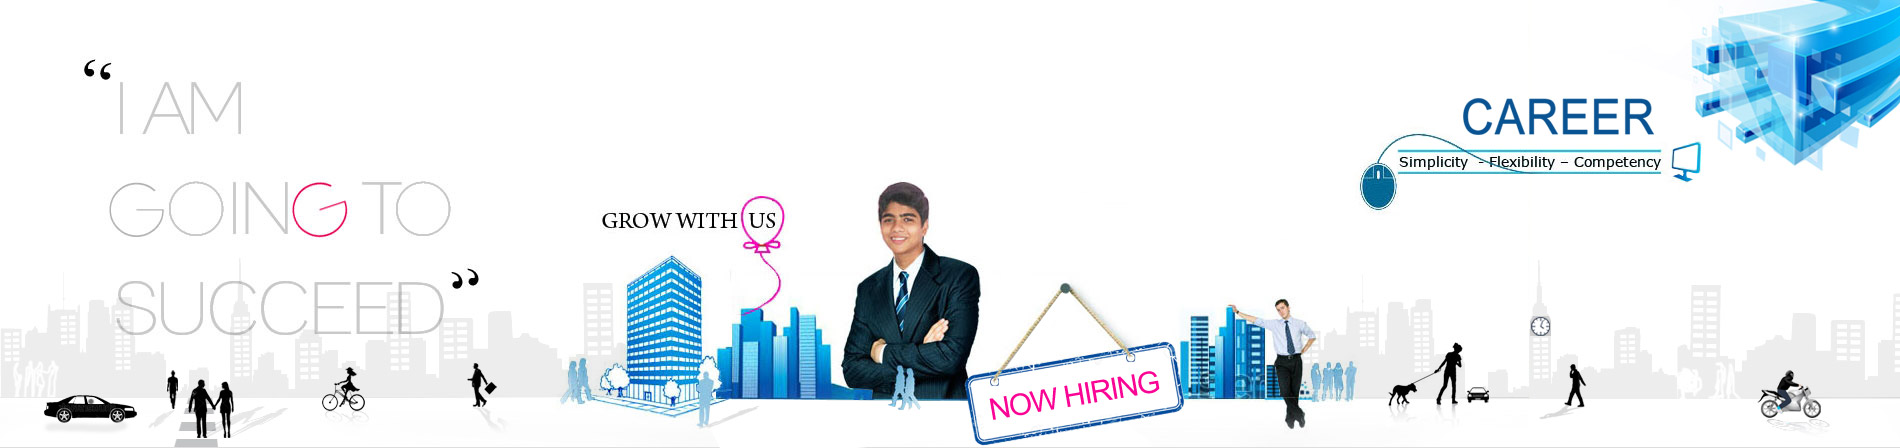 php job, web designing job, user interface job, mobile apps jobs in bangalore, chennai, nagercoil